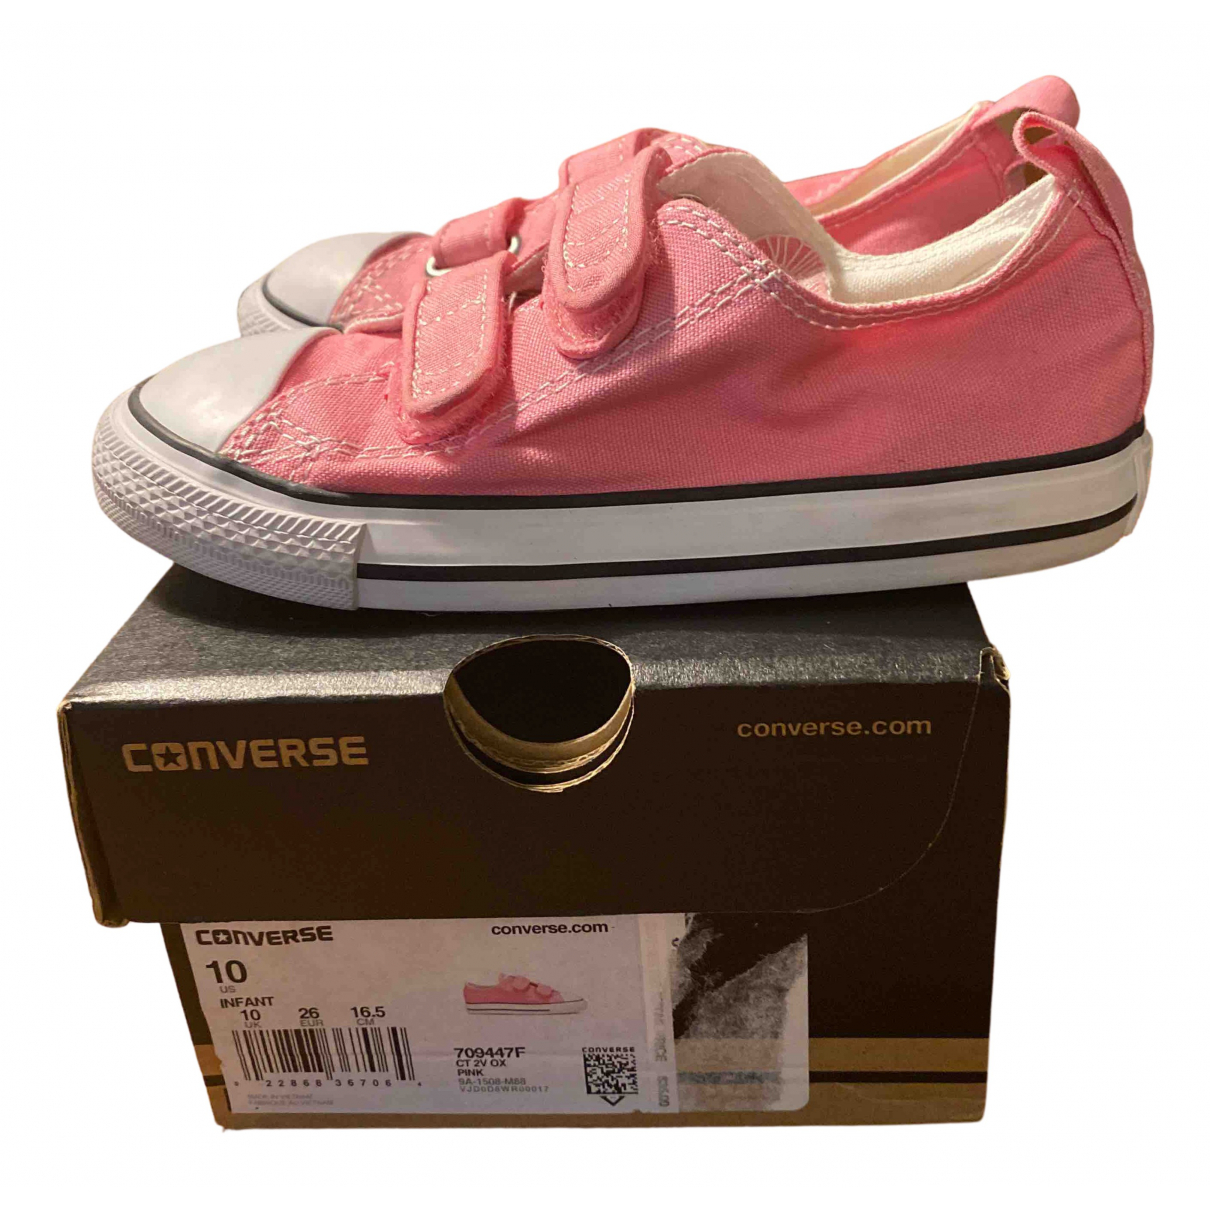 Converse N Pink Cloth Trainers for Kids 10 UK